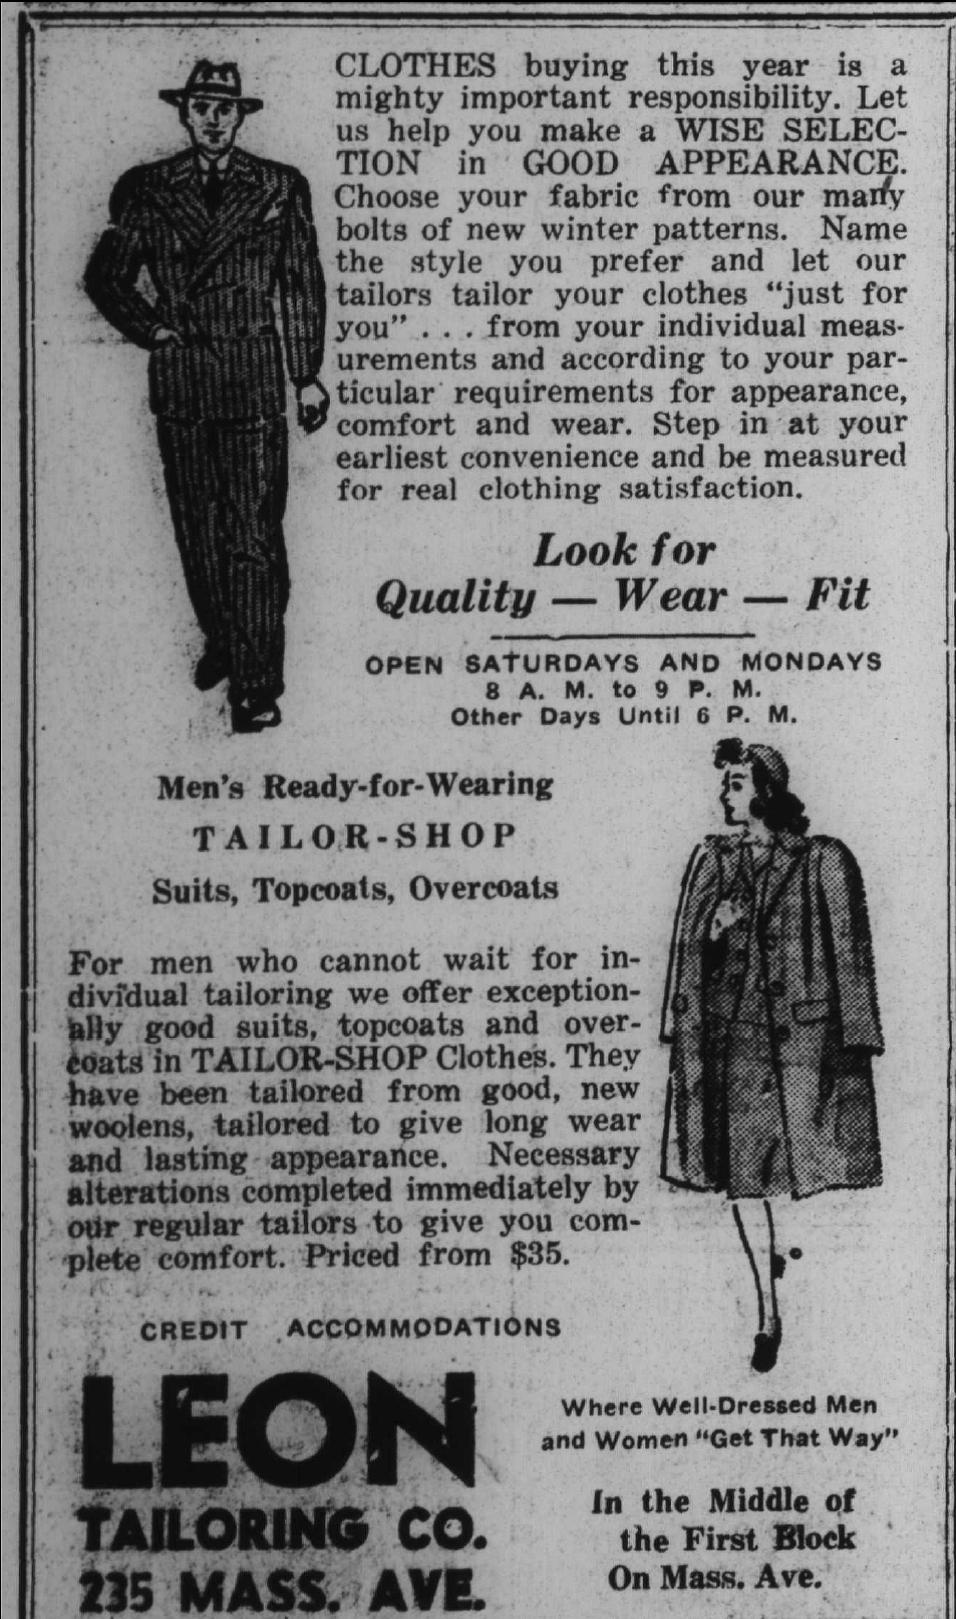 Sunday Adverts: Leon Tailoring